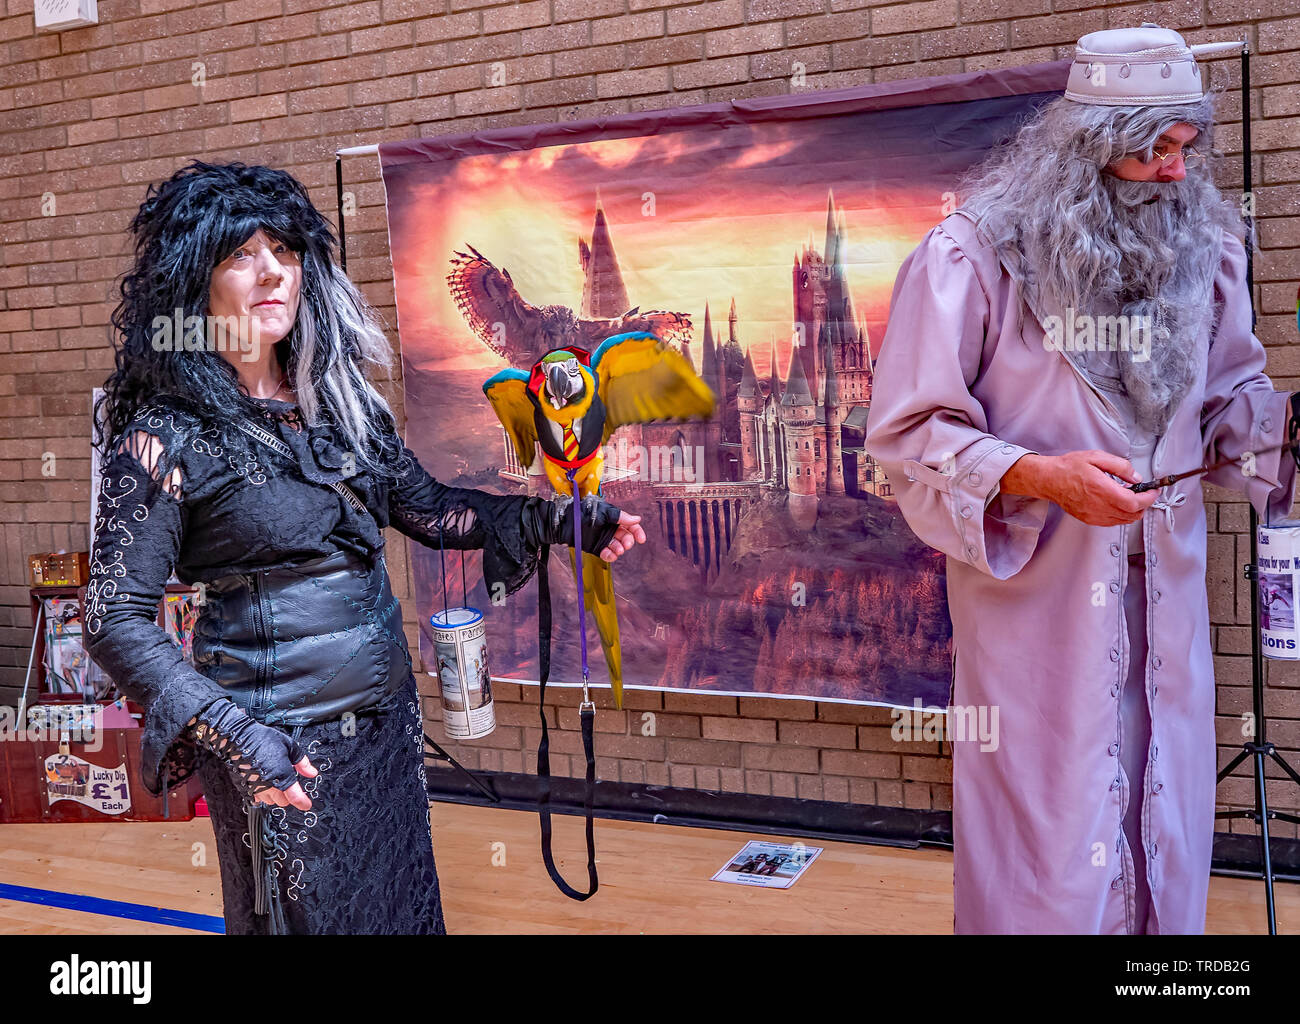 Great Yarmouth Comicon 2019 – A lady in fancy dress holding a parrot and posing for a photo at the Comicon event held in the seaside town of Great Yar - Stock Image